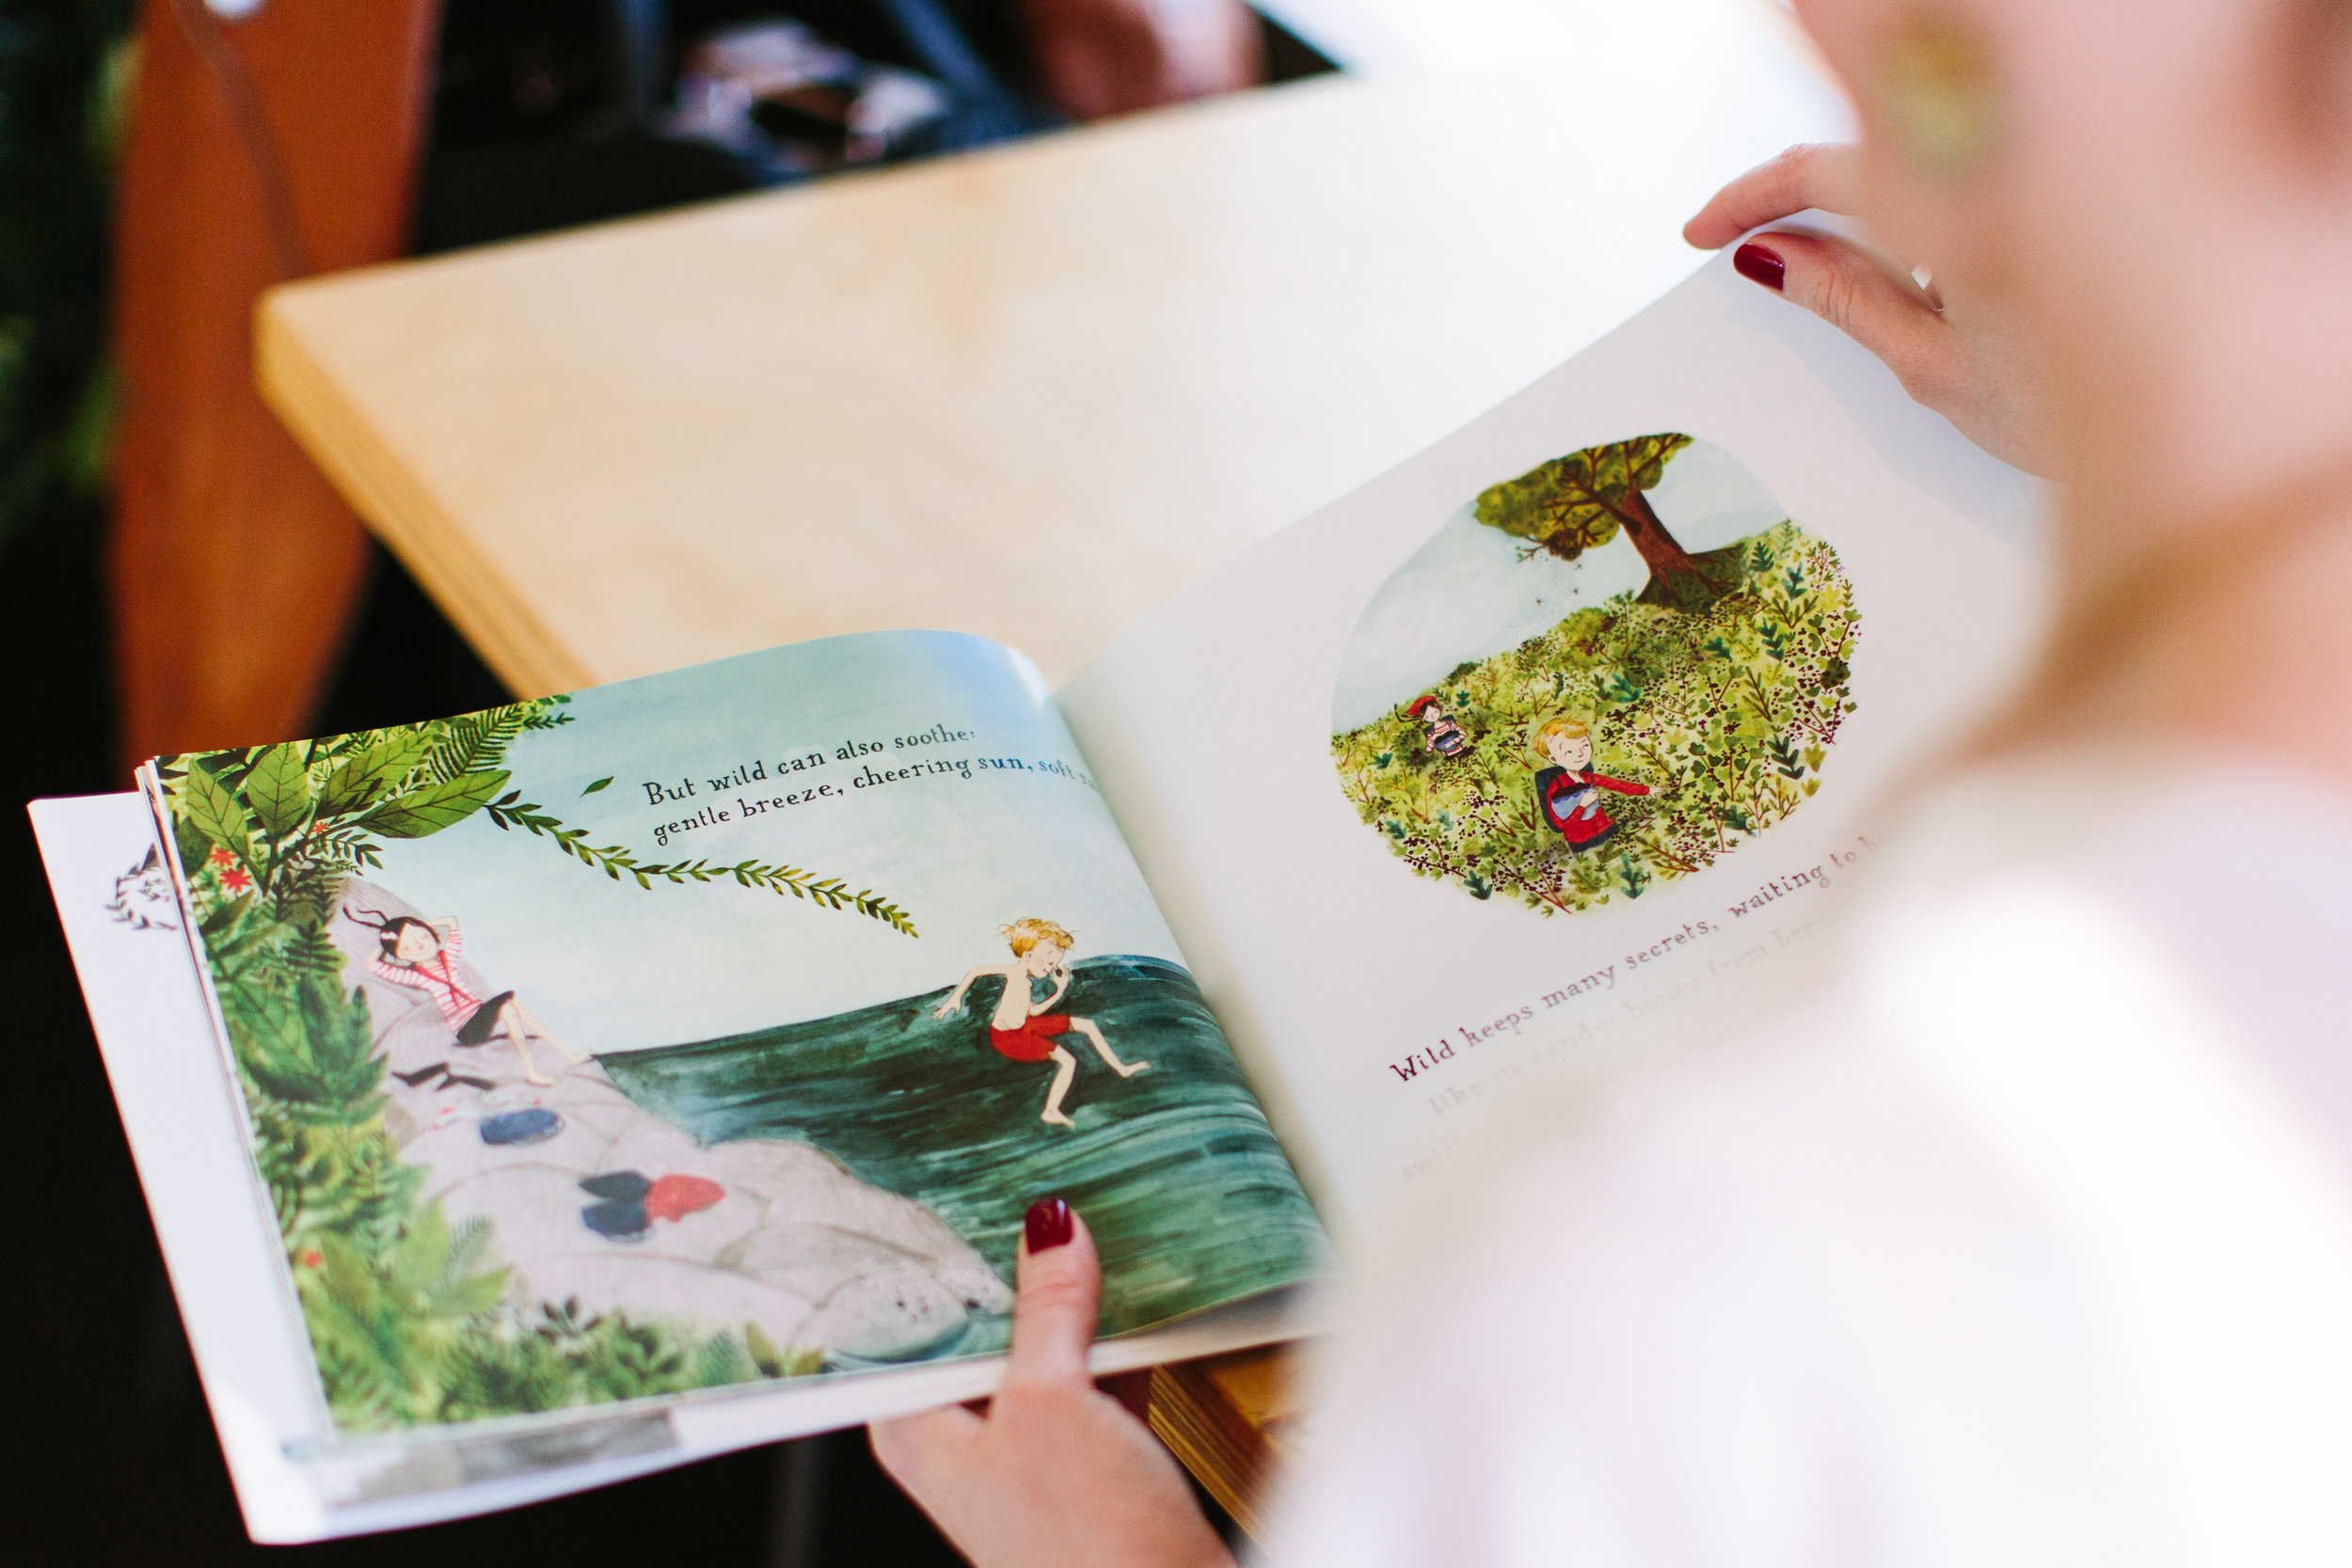 The storybook in this image is  Finding Wild , with illustrations by Abigail Halpin.